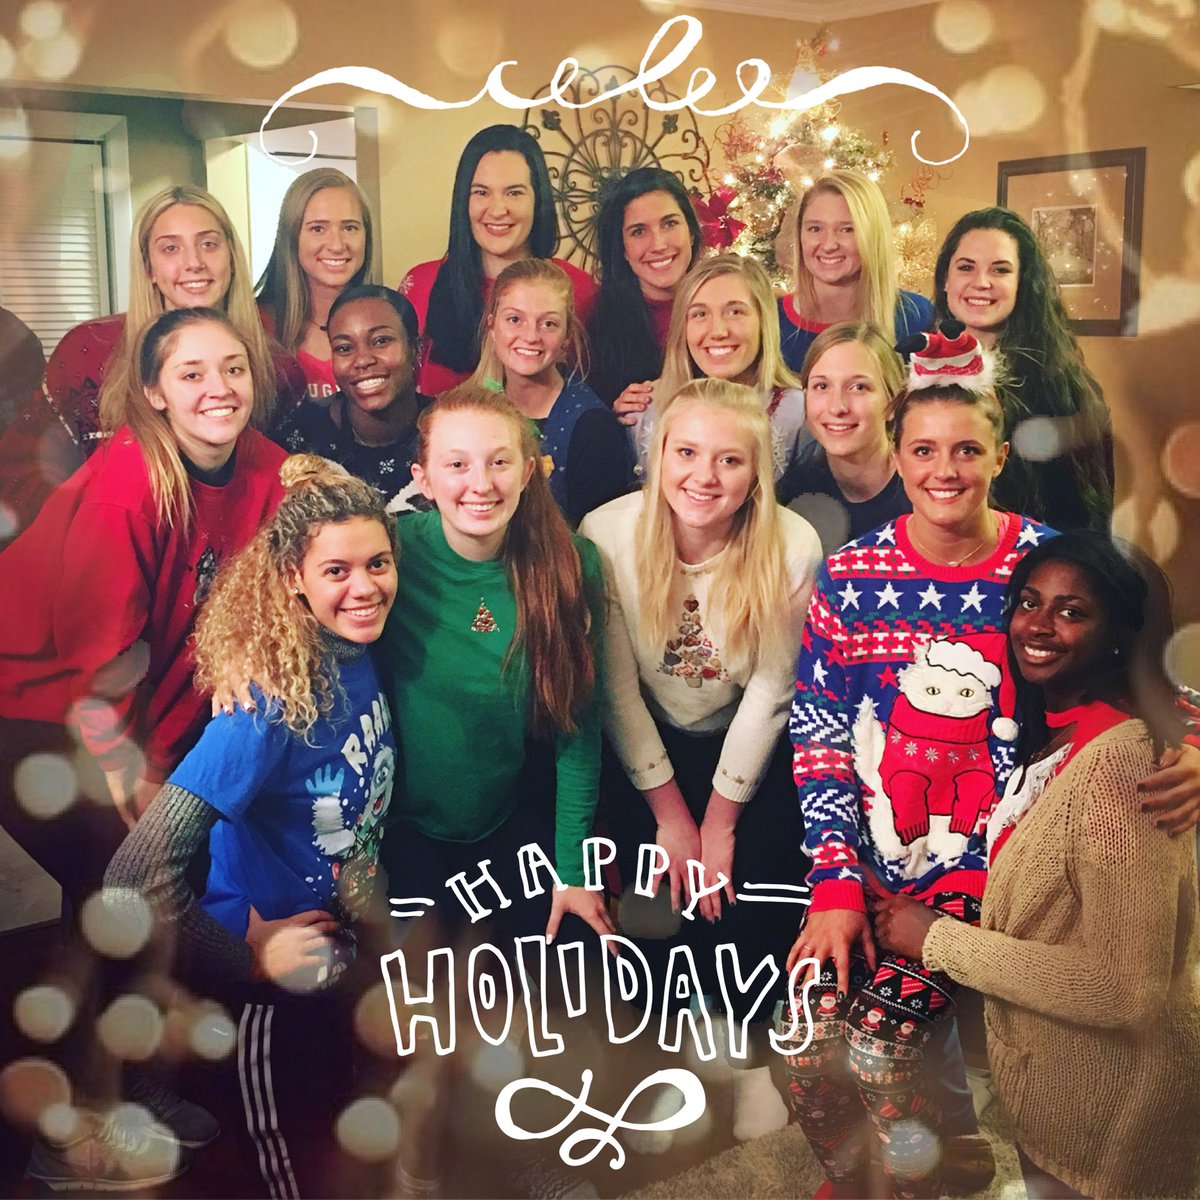 Happy Holidays from Western Illinois Volleyball! @WIUAthletics #ThankfulForFamily @WesternILUniv<br>http://pic.twitter.com/5TvNxVczBe